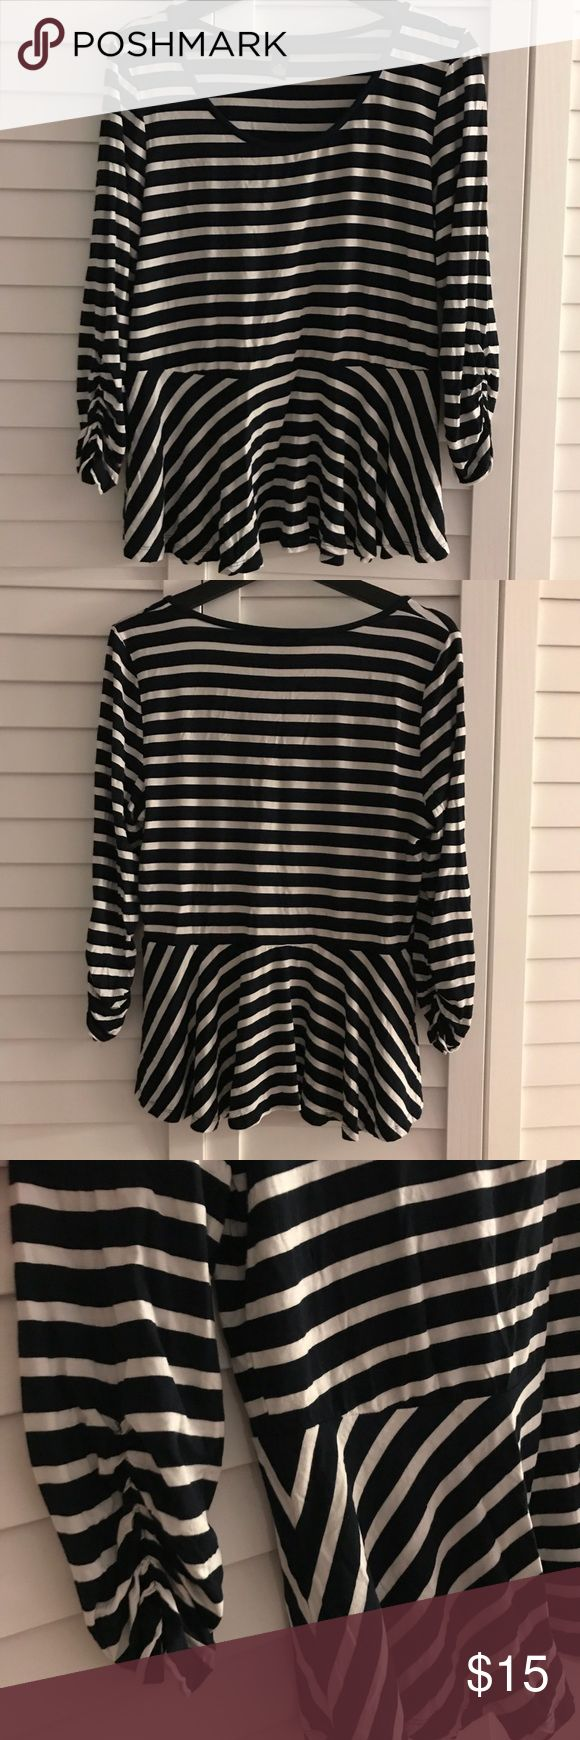 🆕‼️Like New INC Black & White Stipe Peplum Top Stretchy, soft black & white peplum top with 3/4 length gathered sleeves.   Excellent like new condition.  Please let me know if you have any questions!  [smoke-free/pet-friendly home] INC International Concepts Tops Tees - Long Sleeve